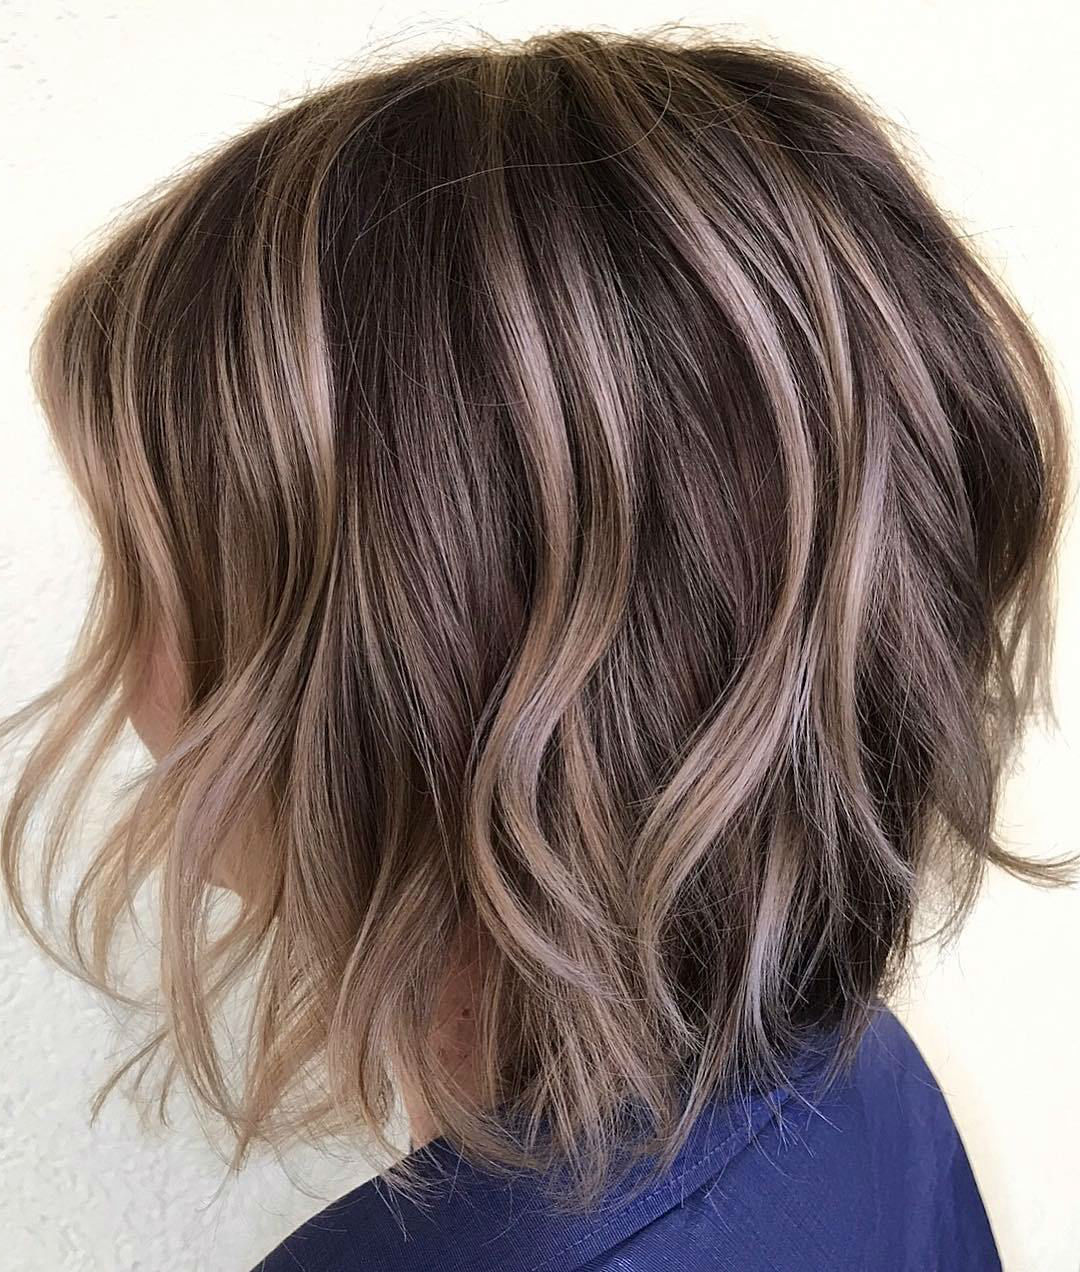 Layered bob | Short Hairstyles For Women Over 50 | Her Beauty